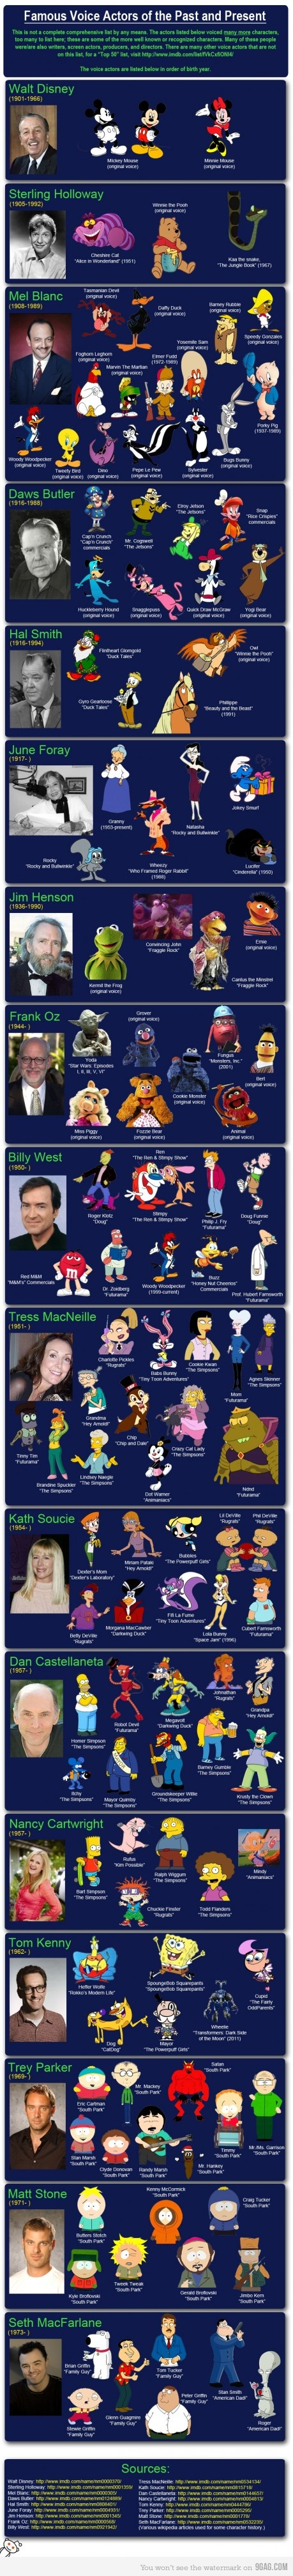 http://www.ljplus.ru/img4/e/q/equilibrio/voice_actors_of_the_past_and_present.jpg